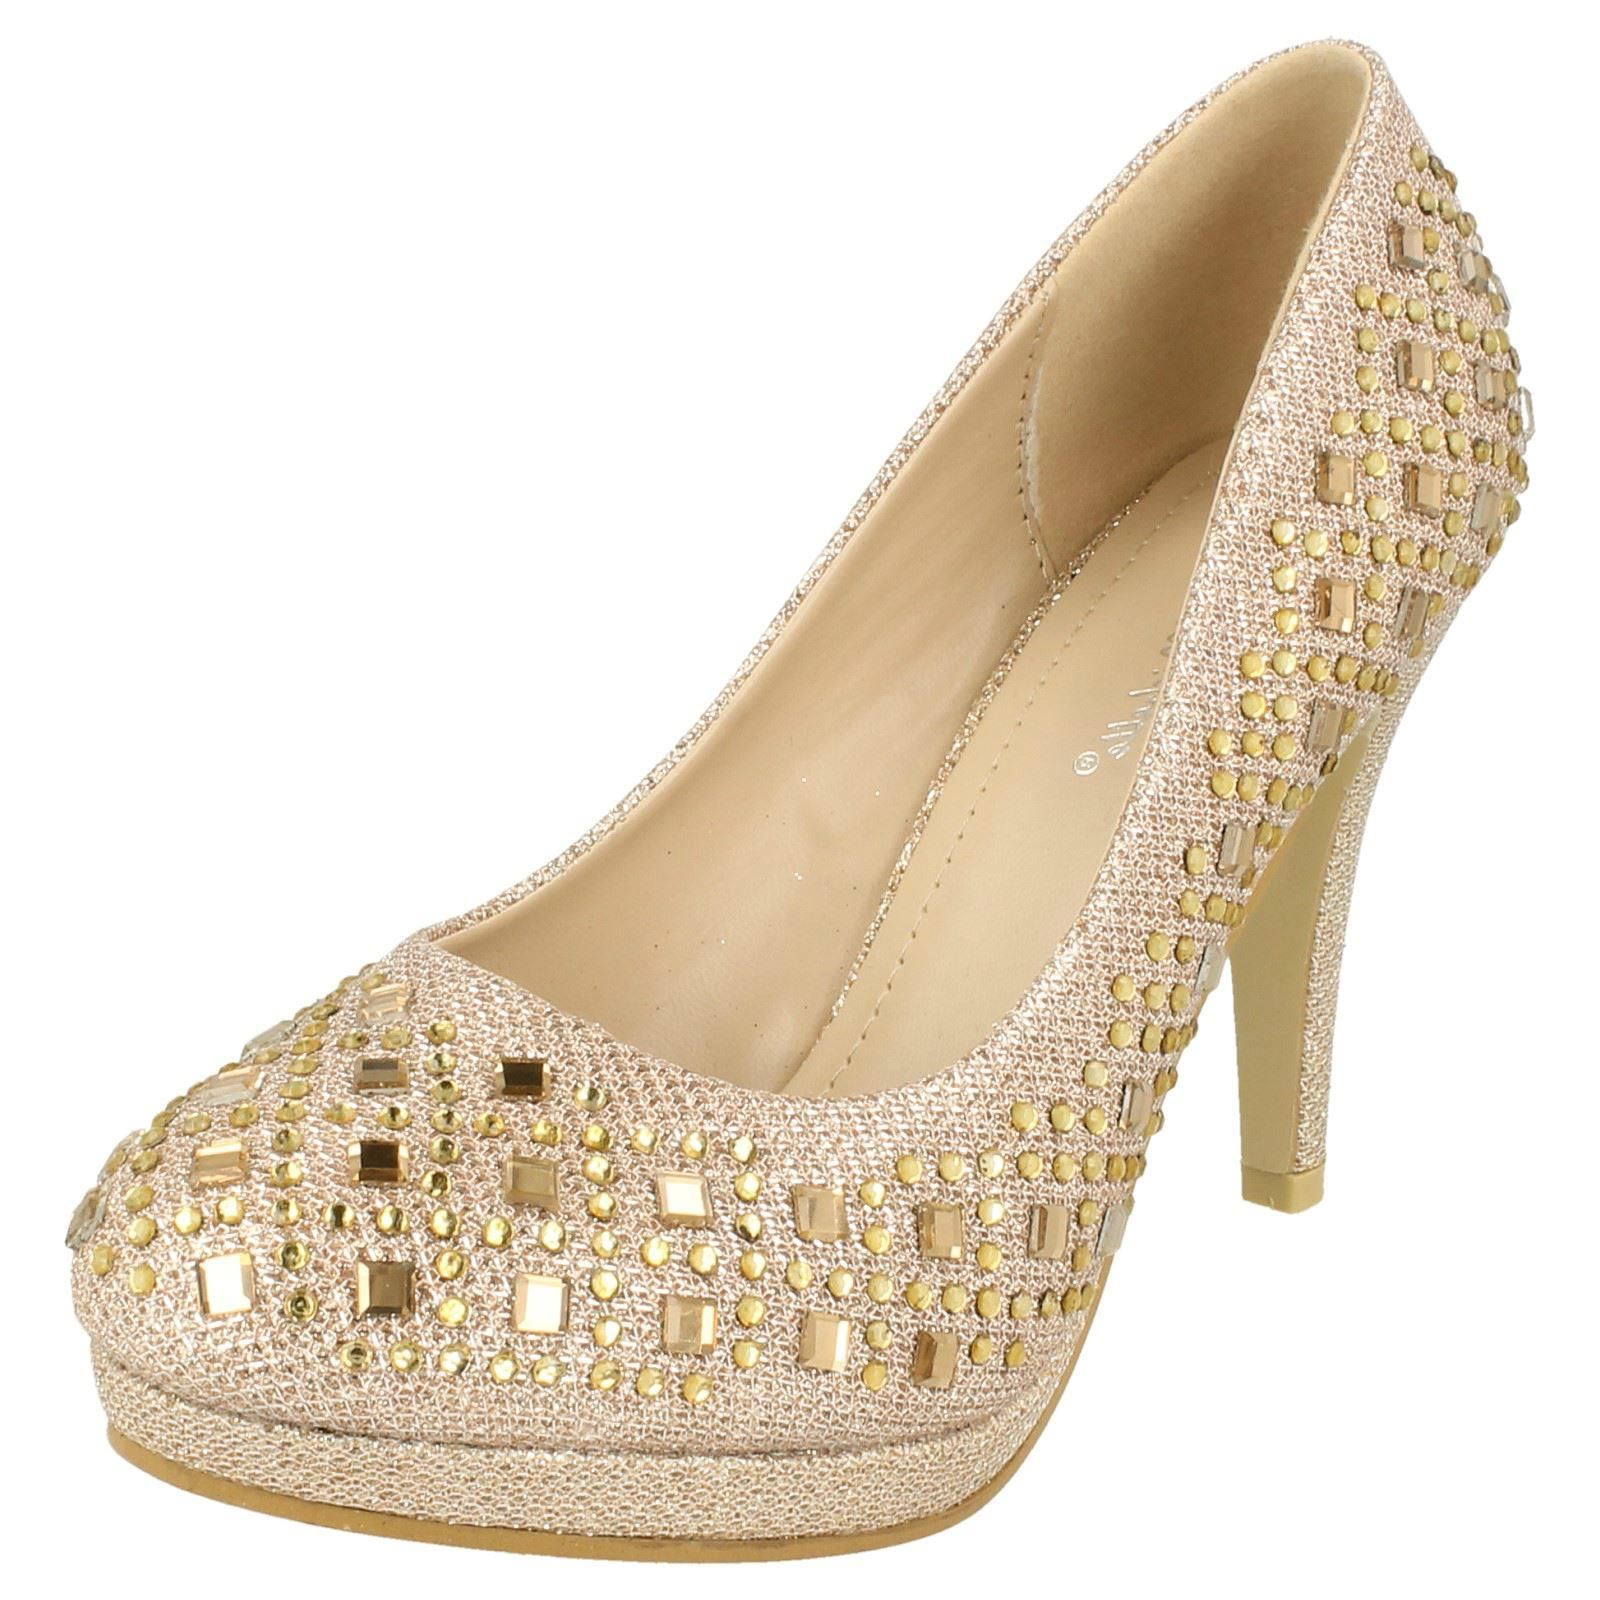 6a9d6137c Ladies Jeweled Court Shoes Anne Michelle F9804 UK 7 Nude gold Textile.  About this product. Picture 1 of 10  Picture 2 of 10 ...